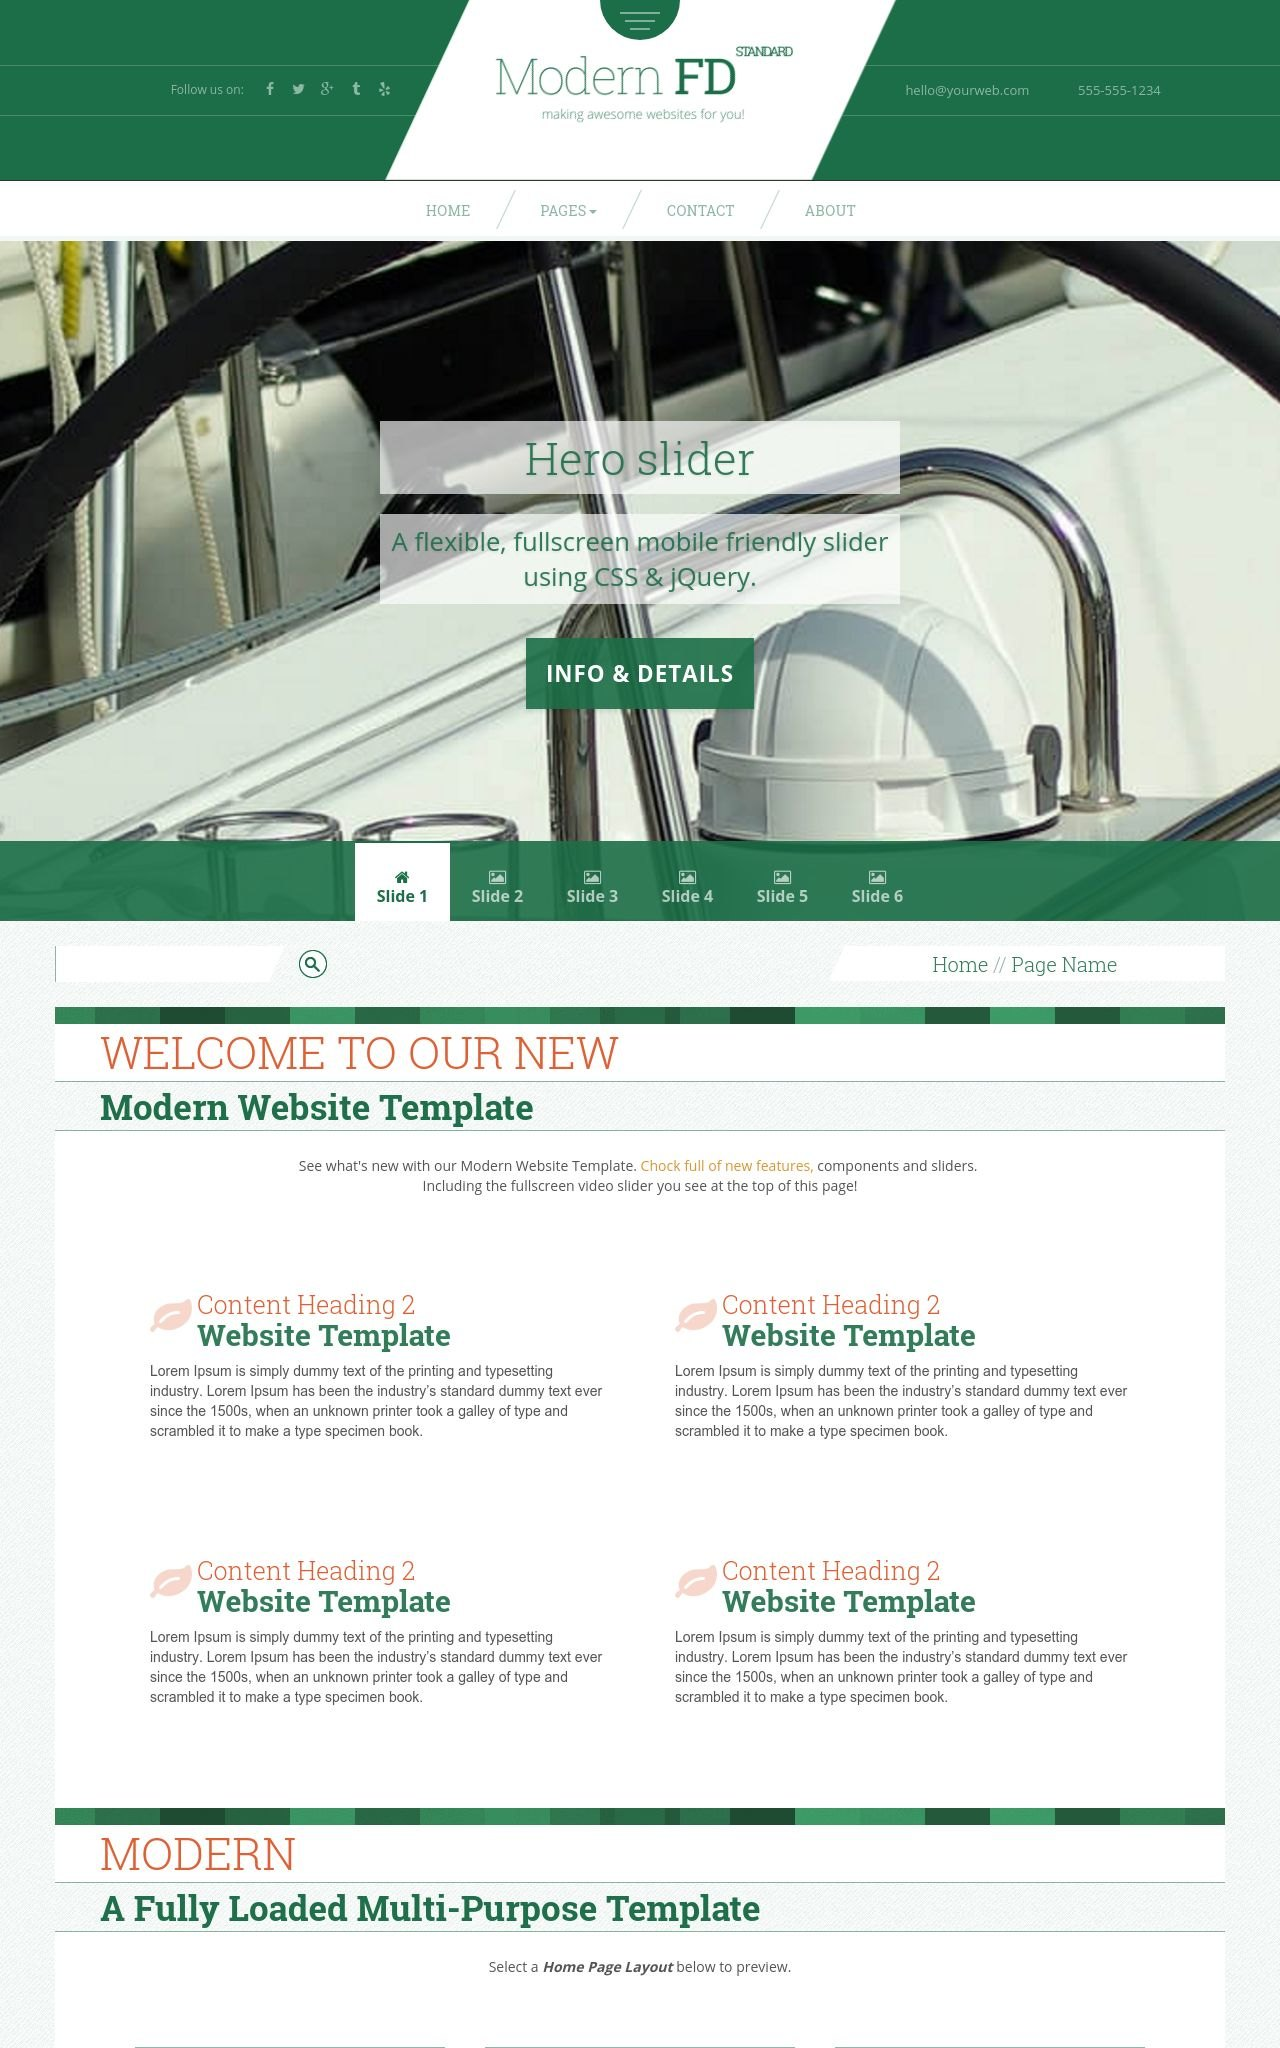 Modern fd boating greenwhite3 boating web template styled text logo maxwellsz